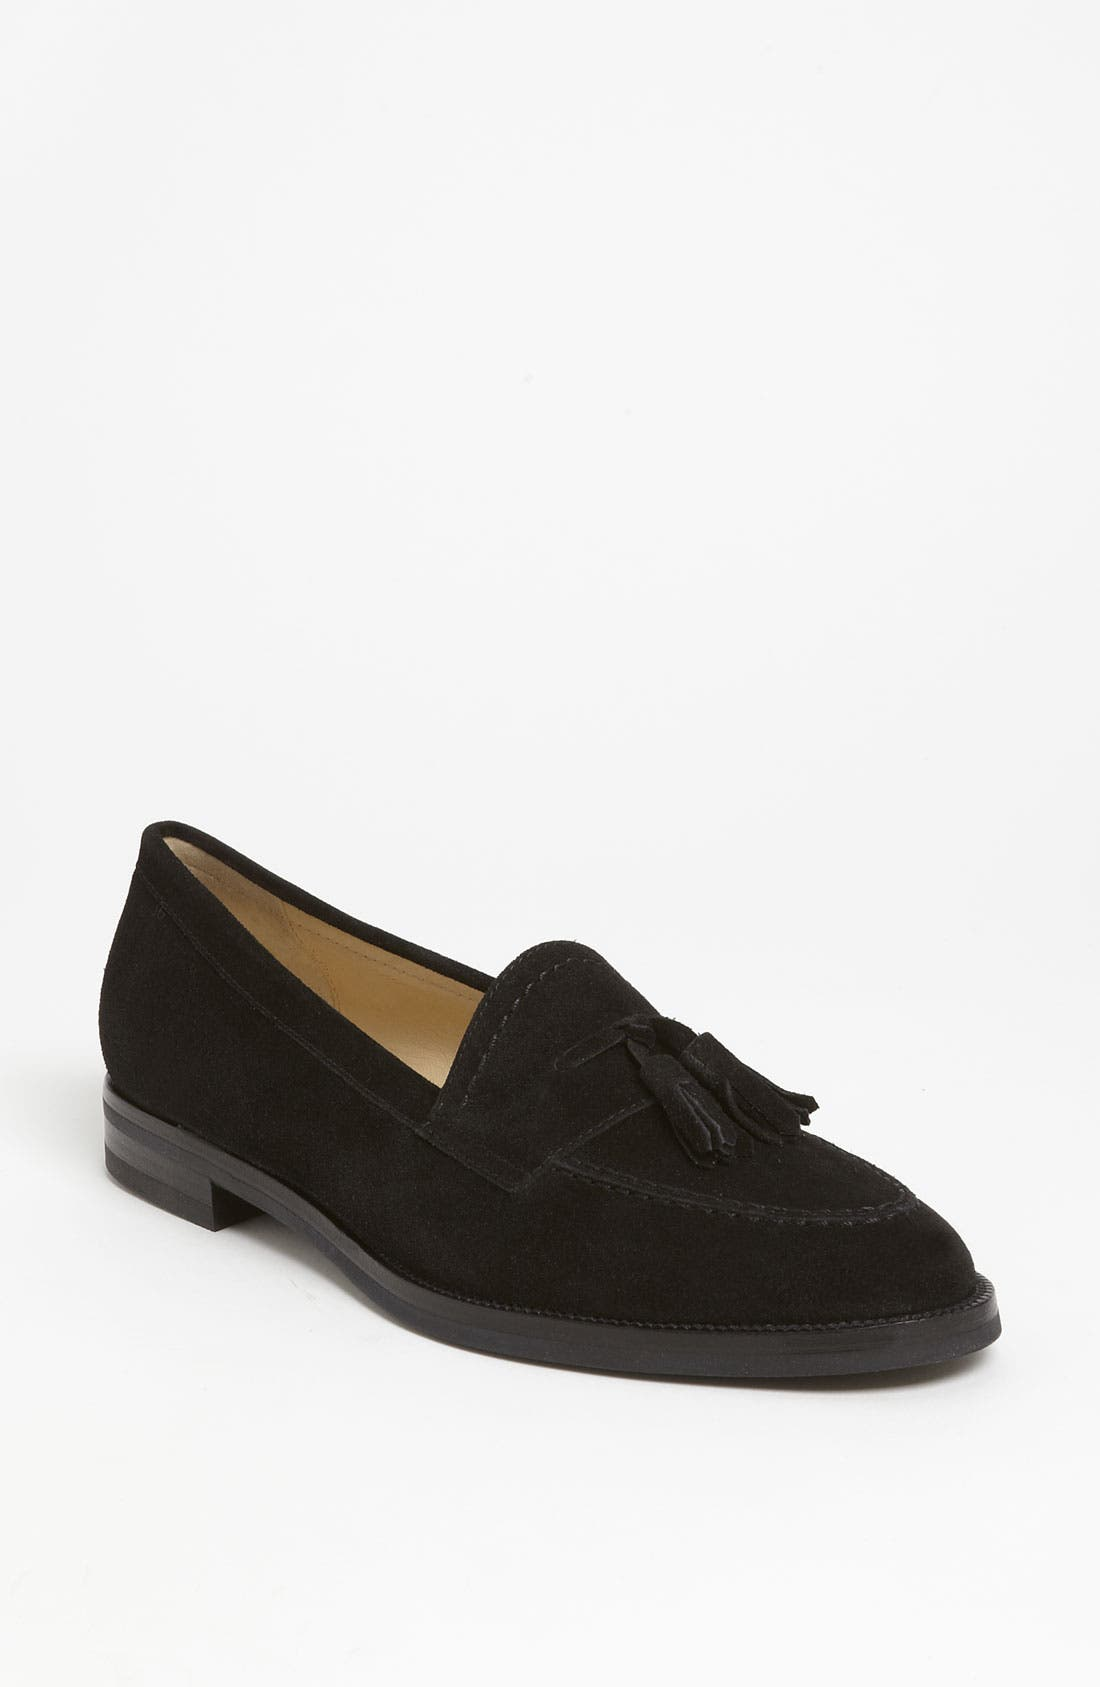 Alternate Image 1 Selected - Manolo Blahnik 'Aldena' Loafer